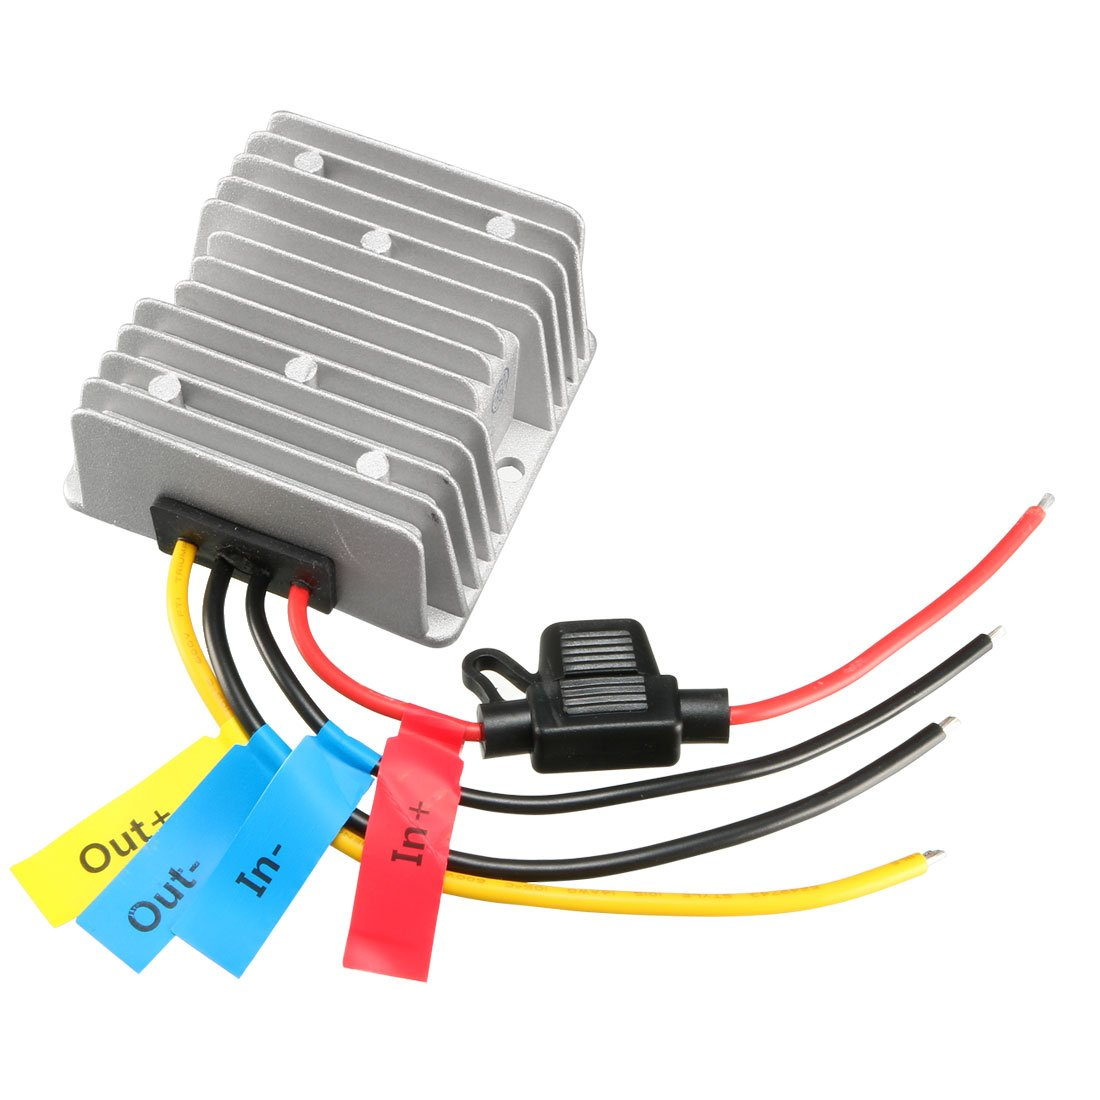 uxcell DC 48V Step-Down to DC 12V 20A 240W Waterproof Car Power Supply Module Voltage Converter Regulator Transformer